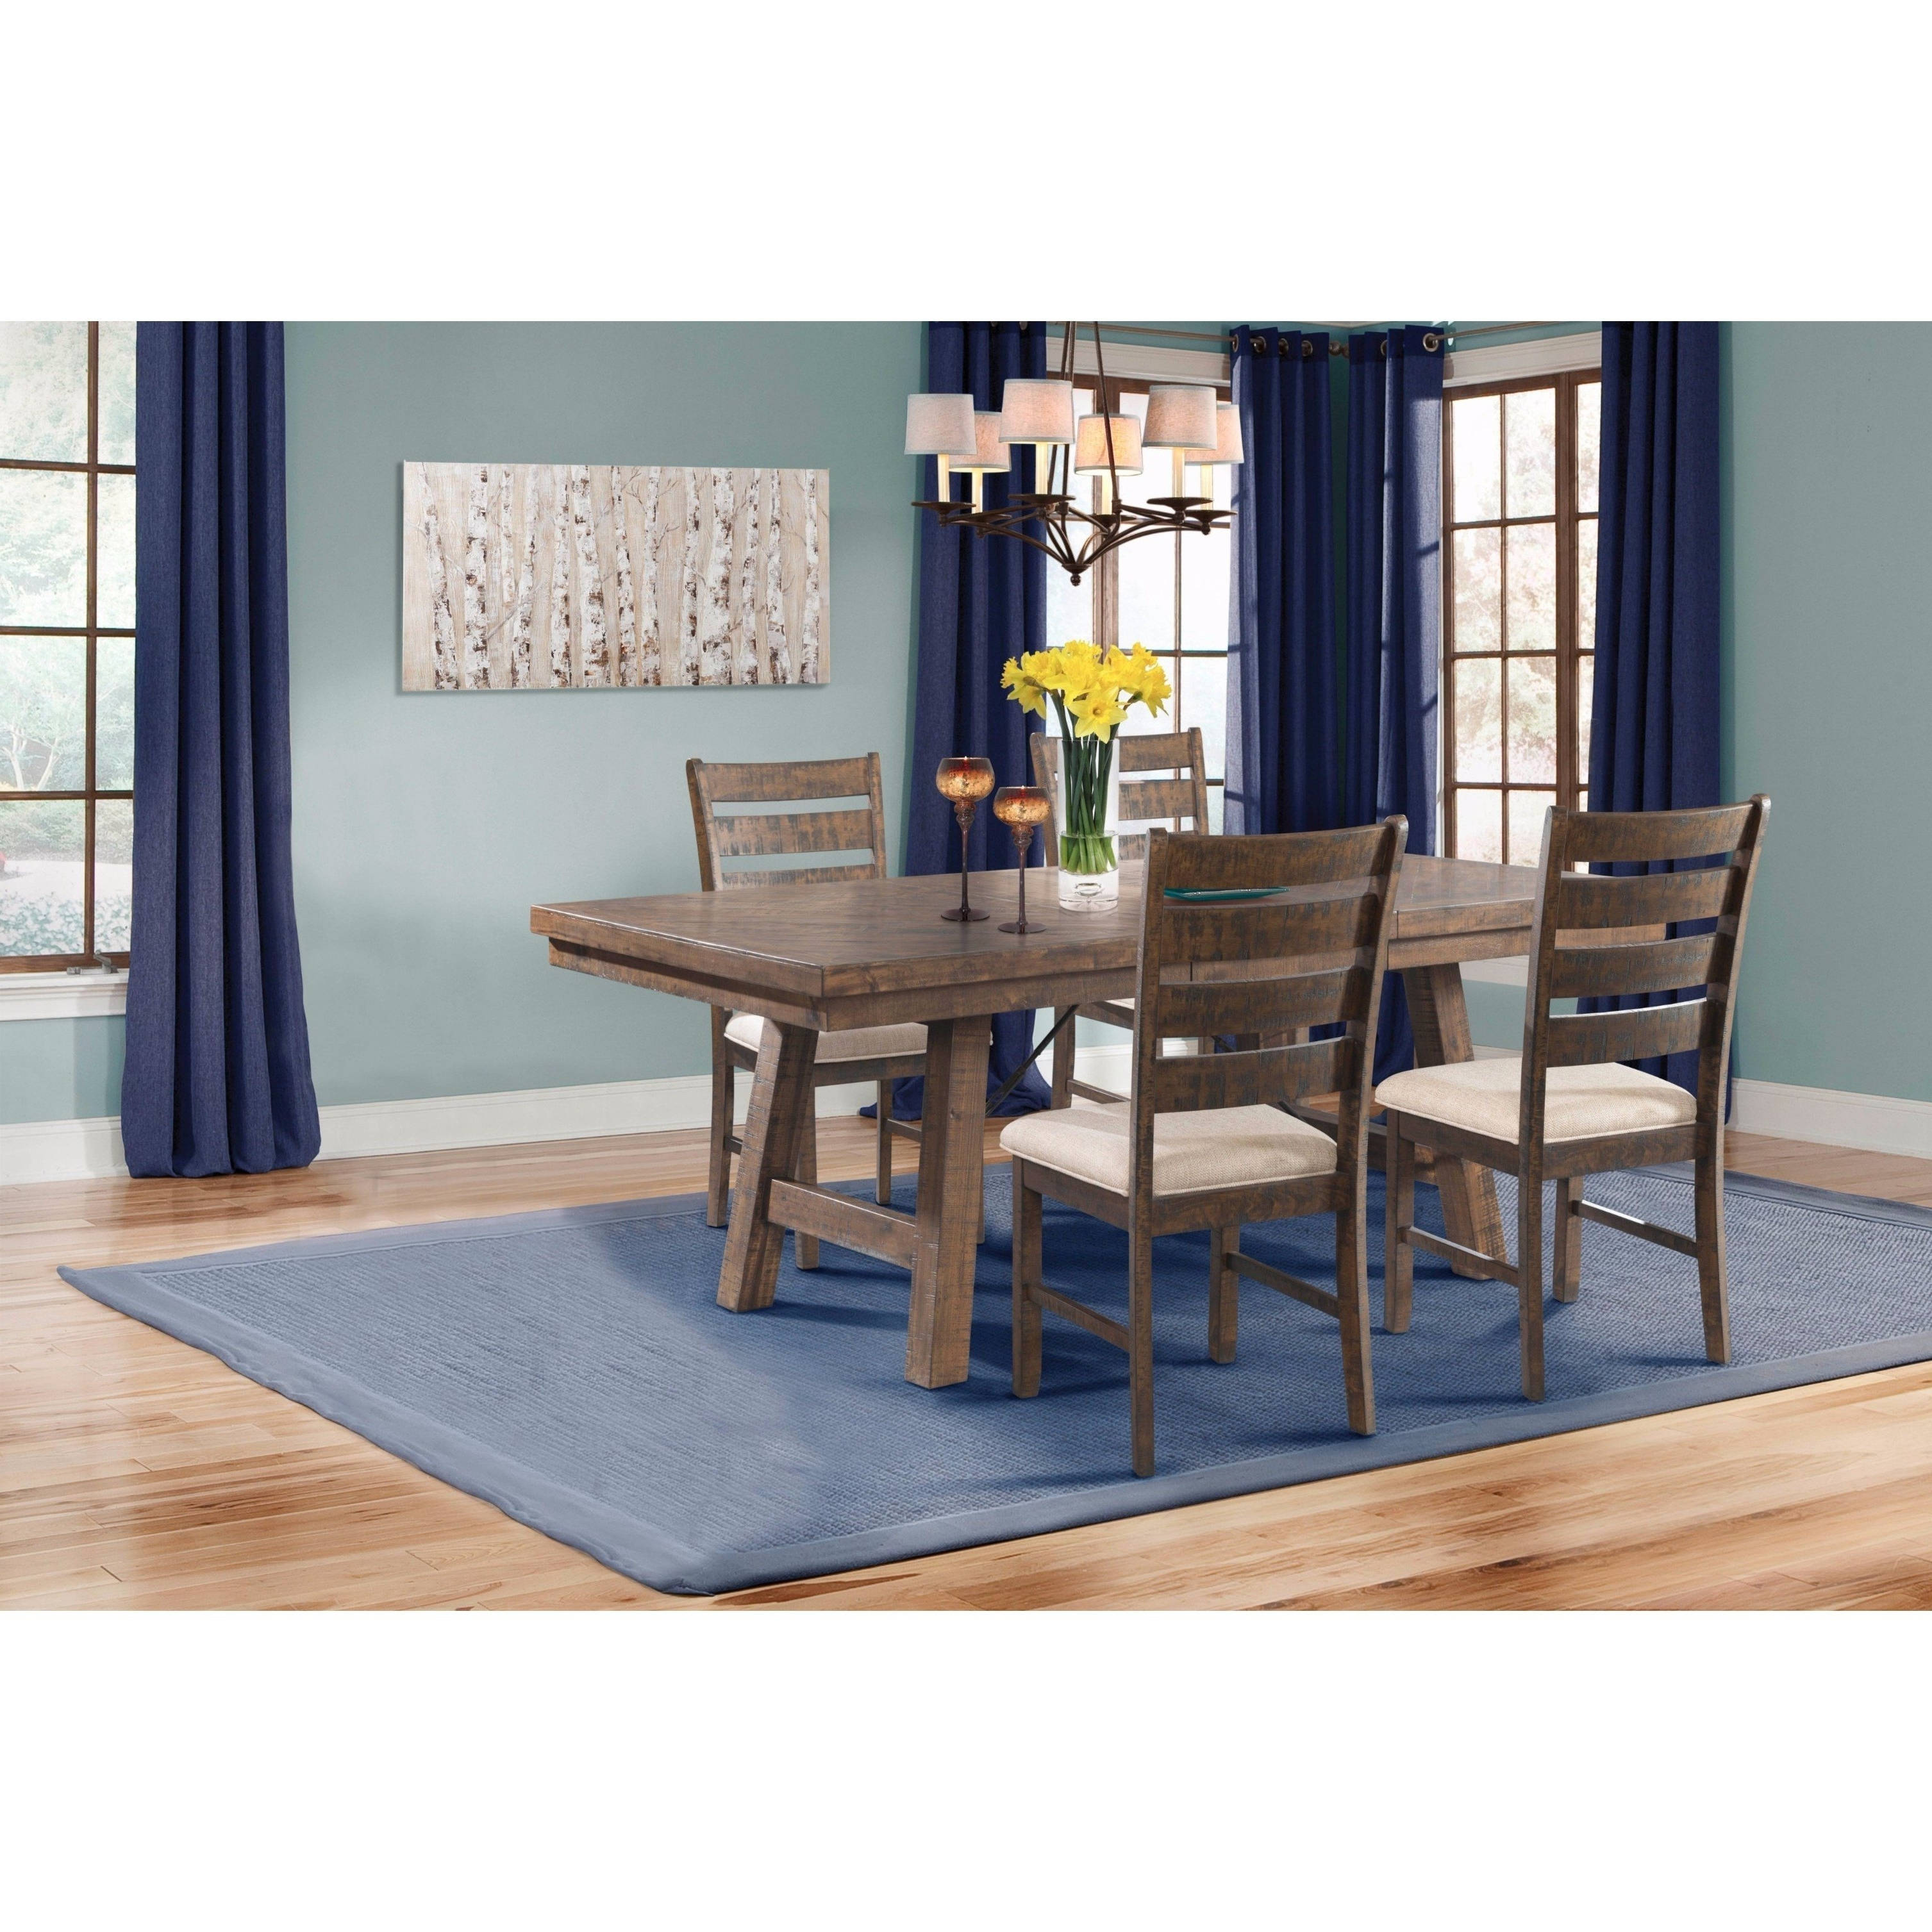 Shop Picket House Furnishings Dex 5Pc Dining Set Table, 4 Ladder With Regard To Famous Caden 7 Piece Dining Sets With Upholstered Side Chair (View 19 of 25)